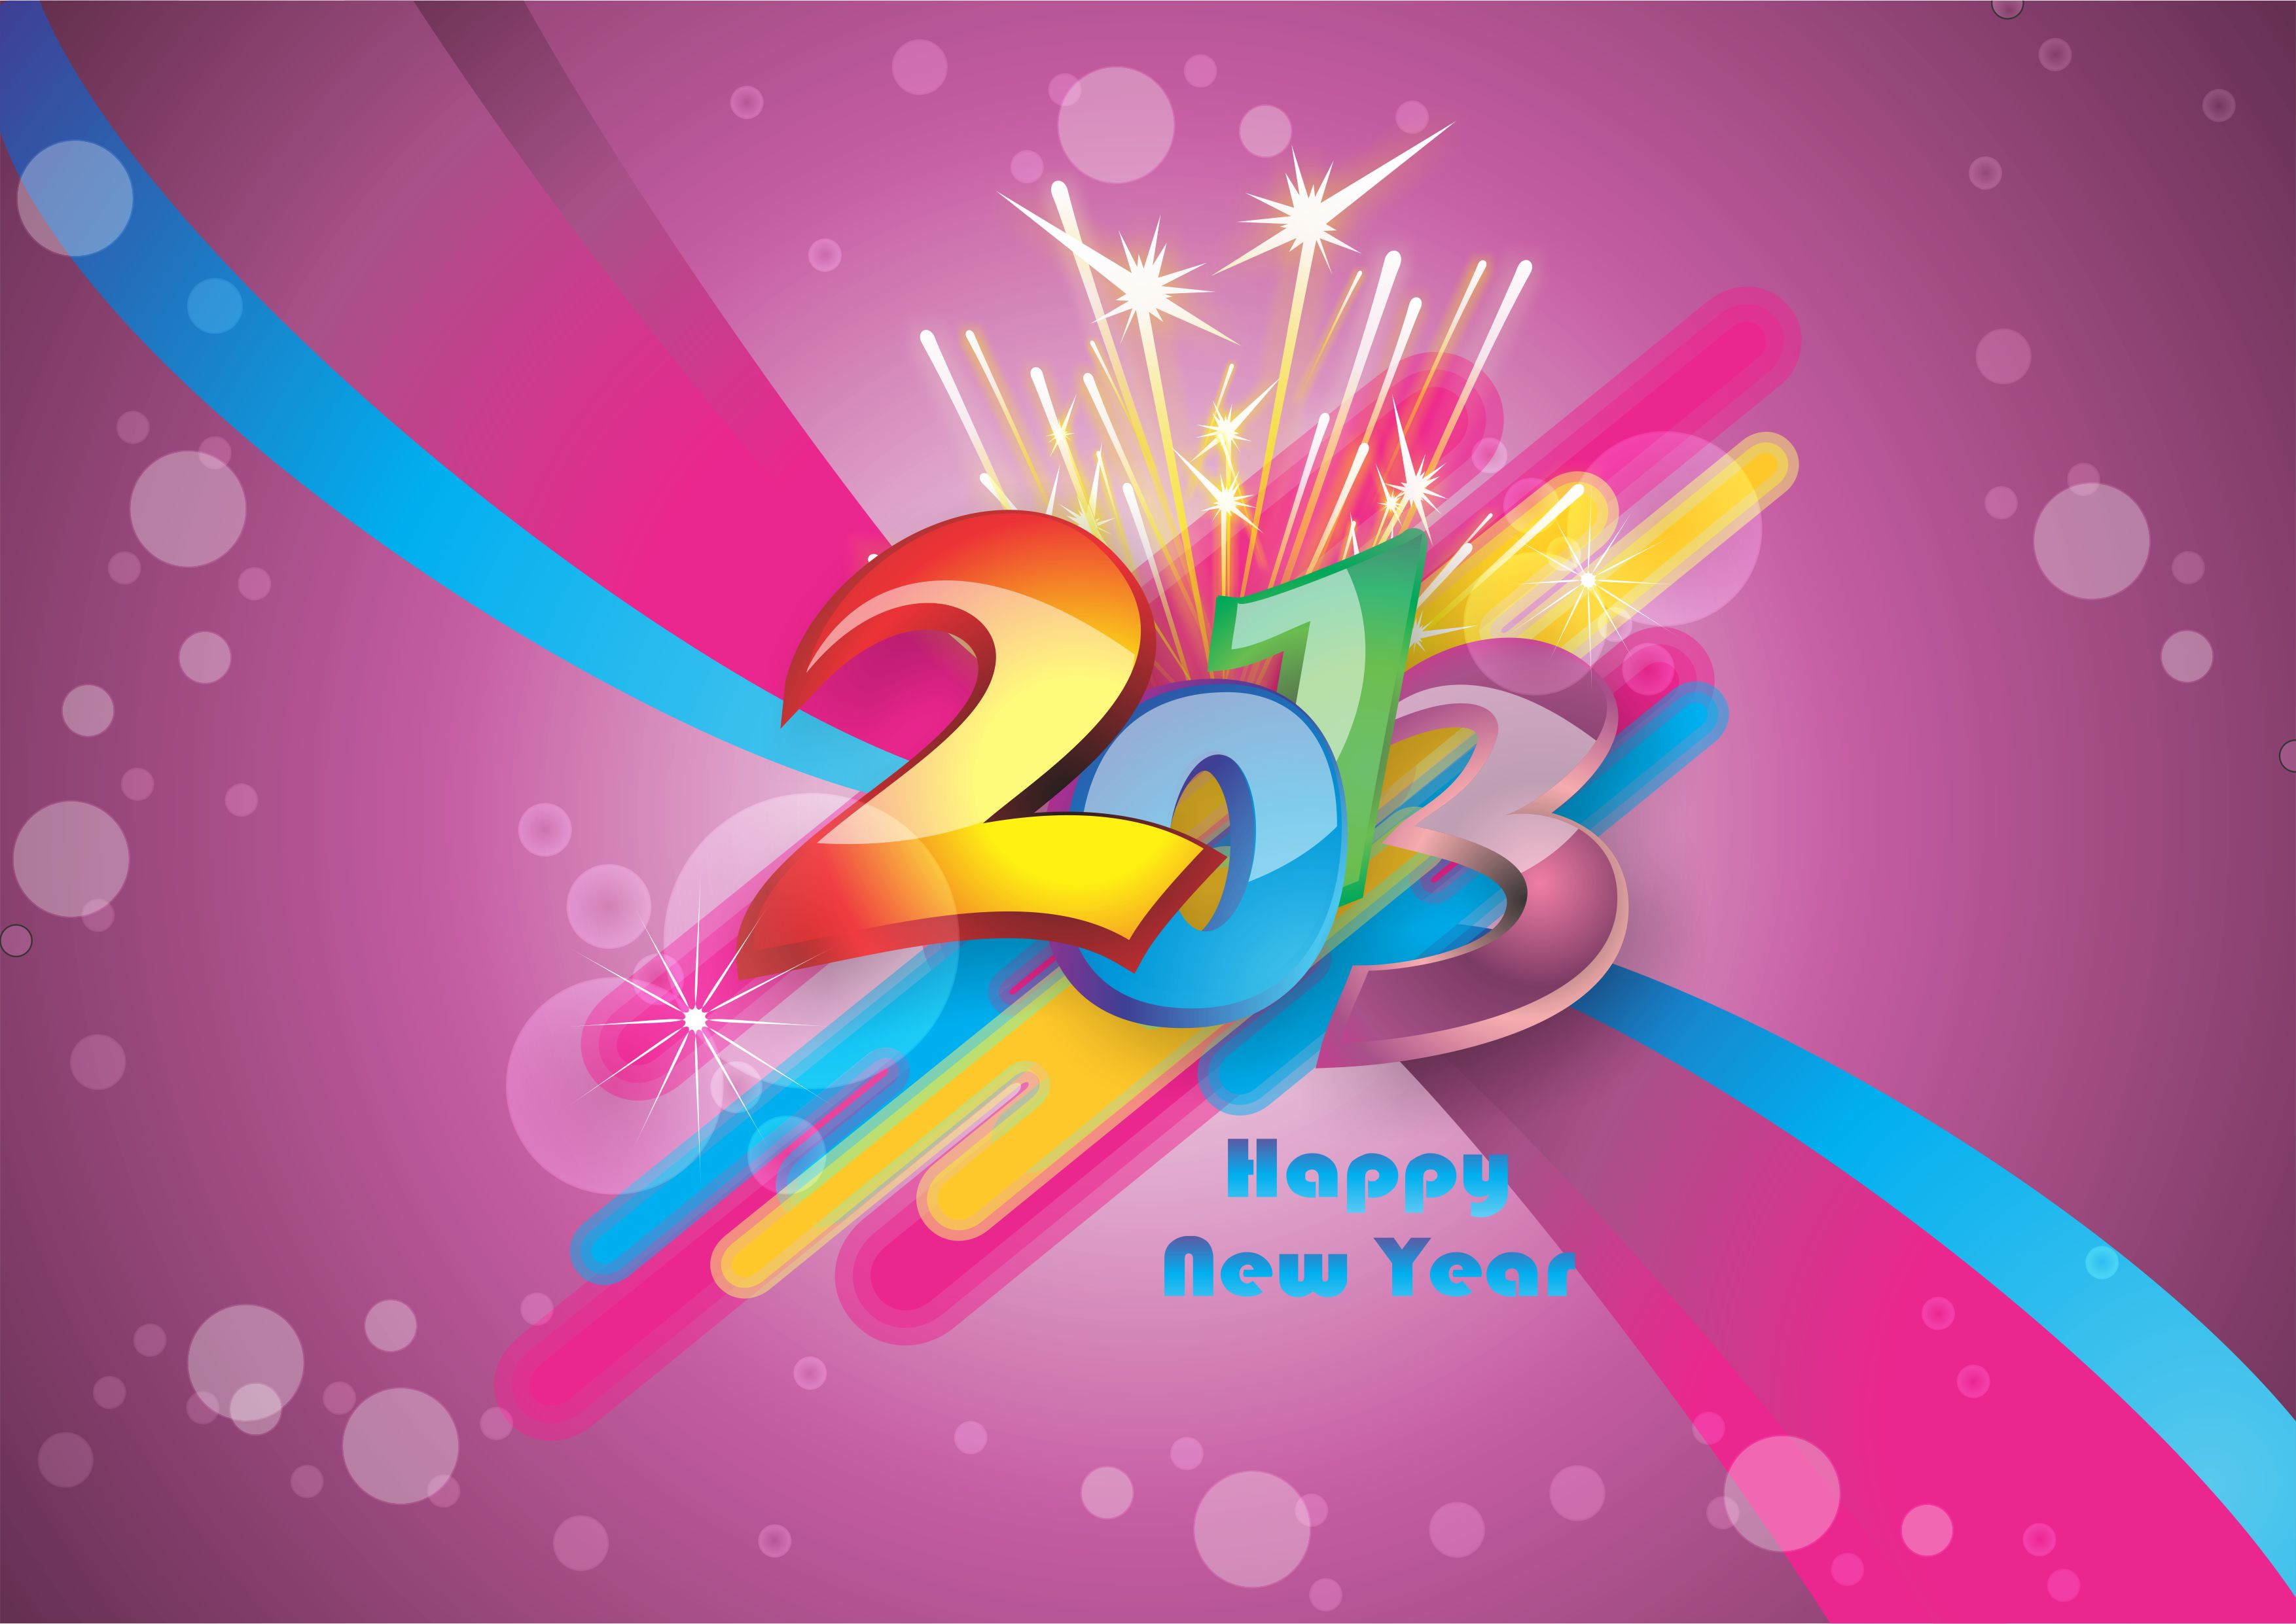 New Year 2013 Wallpaper 3508×2482